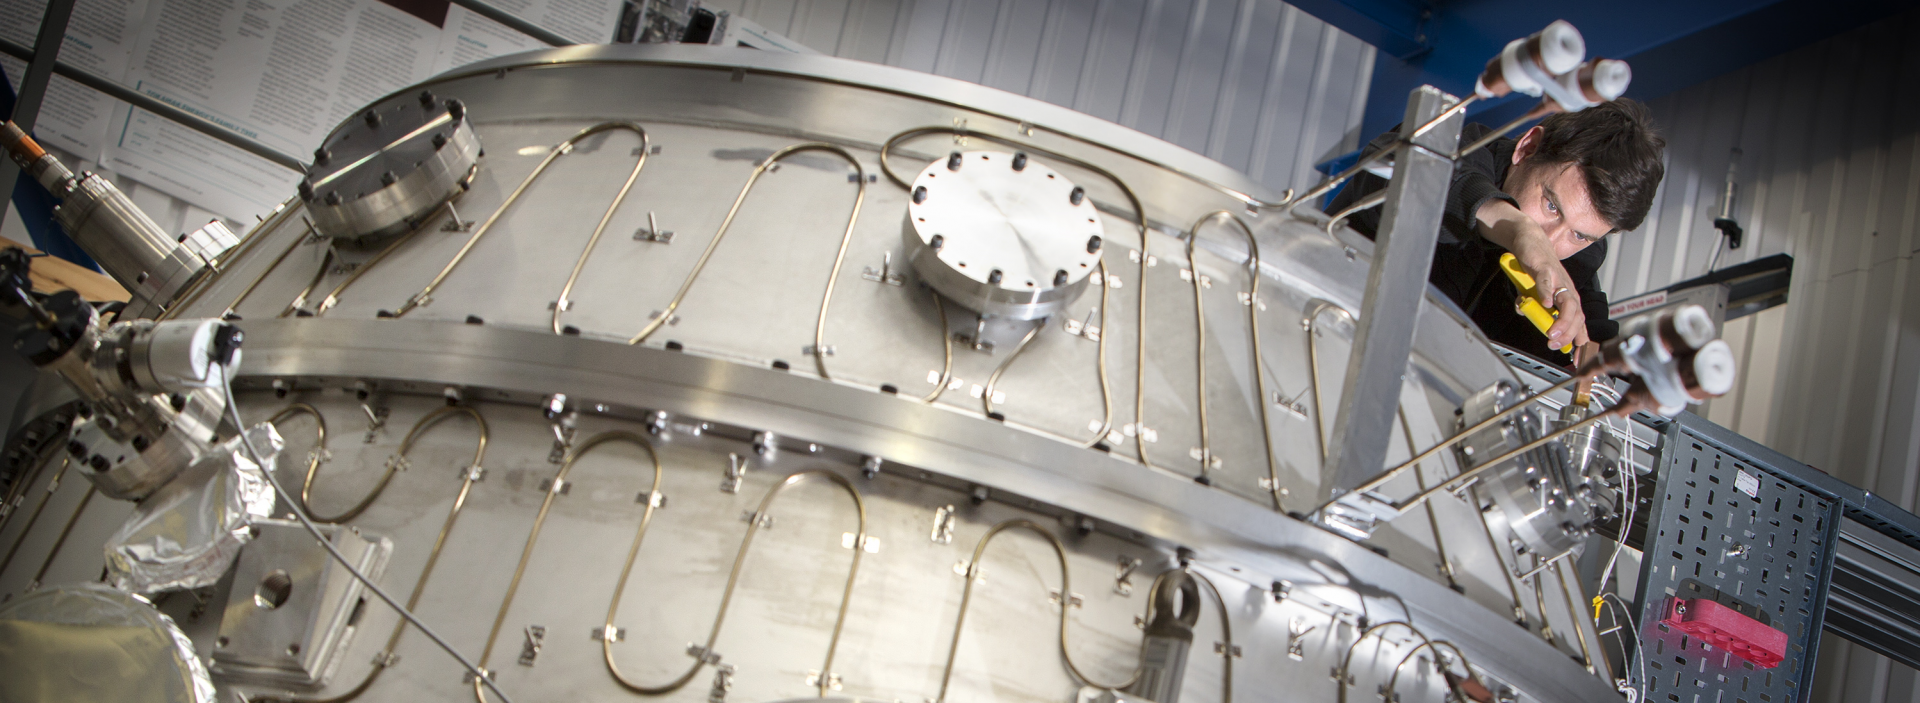 The Tokamak ST40 fusion reactor, which has been switched on and taken the UK one step further towards generating electricity from the power of the stars - image courtesy of Tokamak Energy.